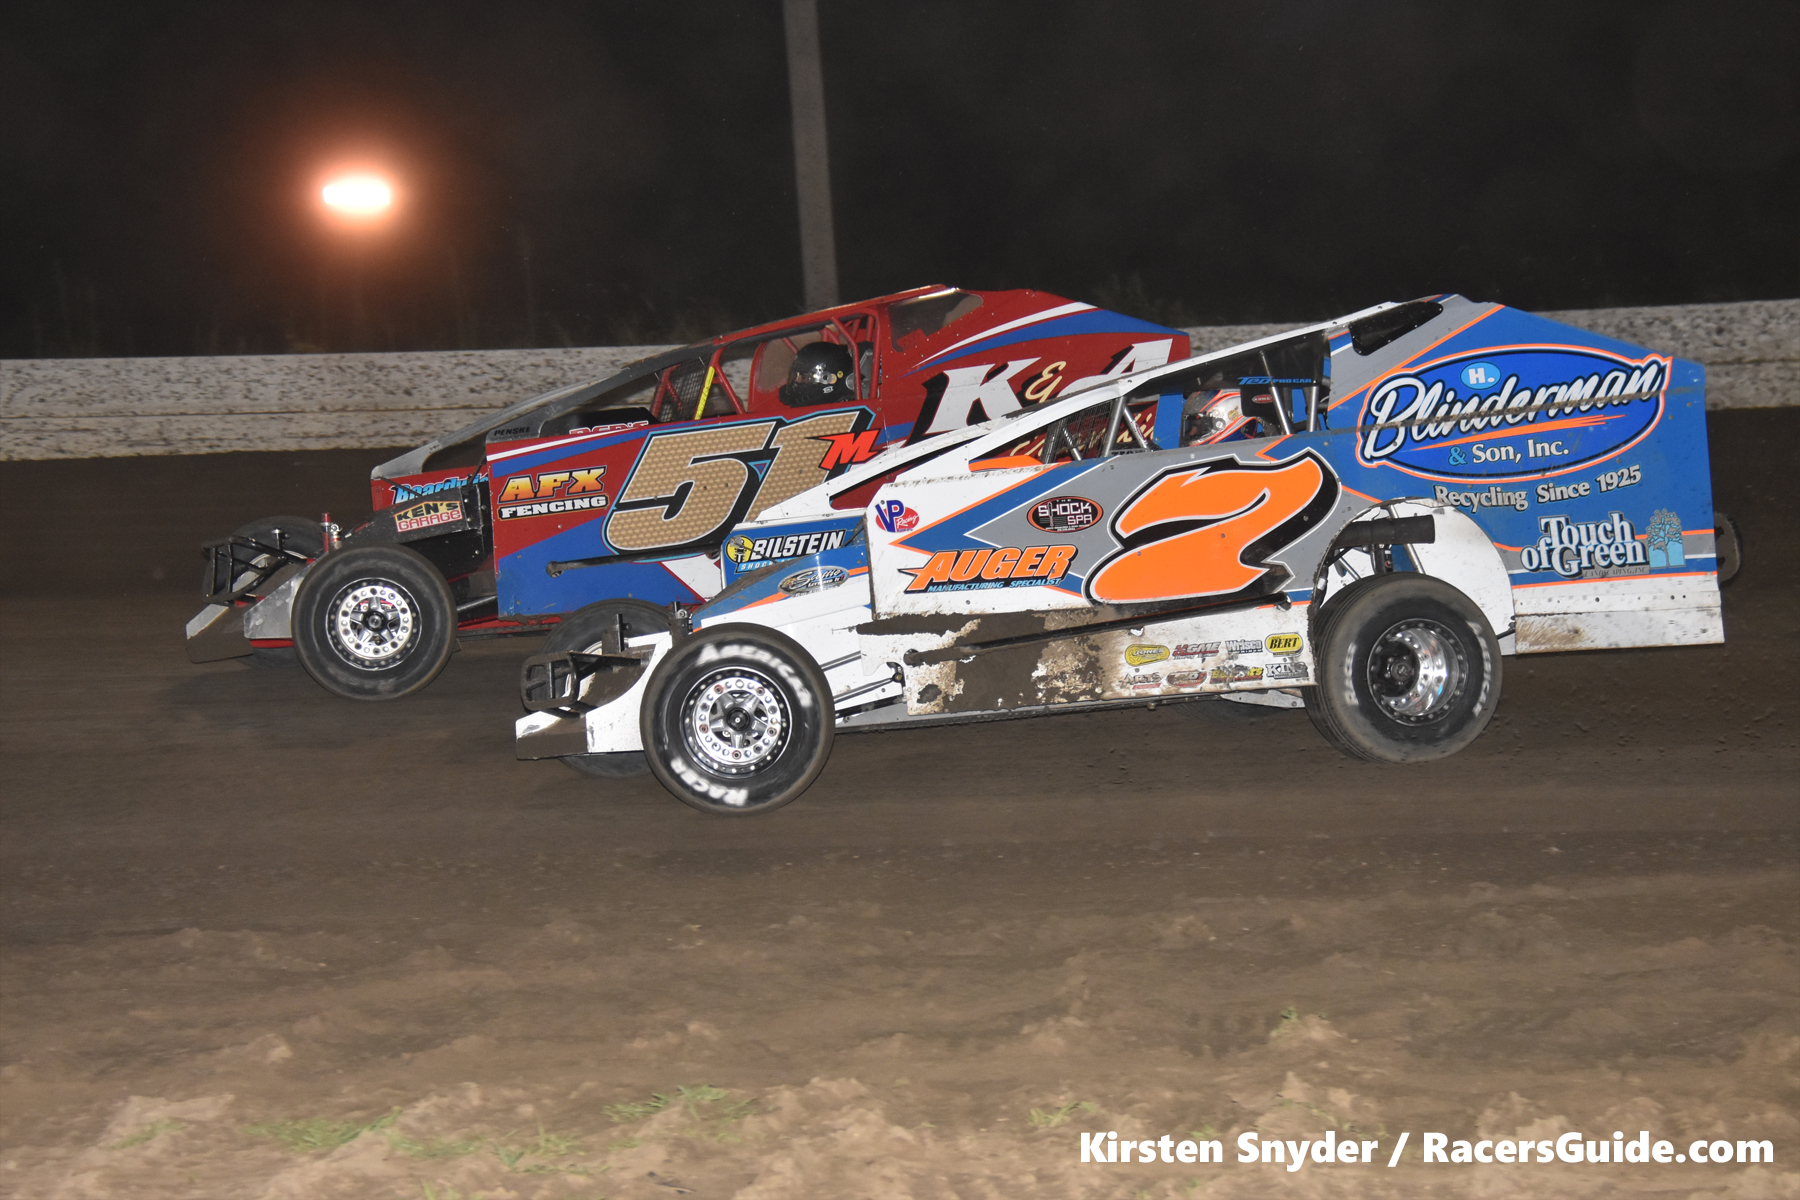 Another Full Night Of Racing Is Headed Your Way At The Bridgeport Speedway  On Saturday, August 19th. All County Garage Door ...